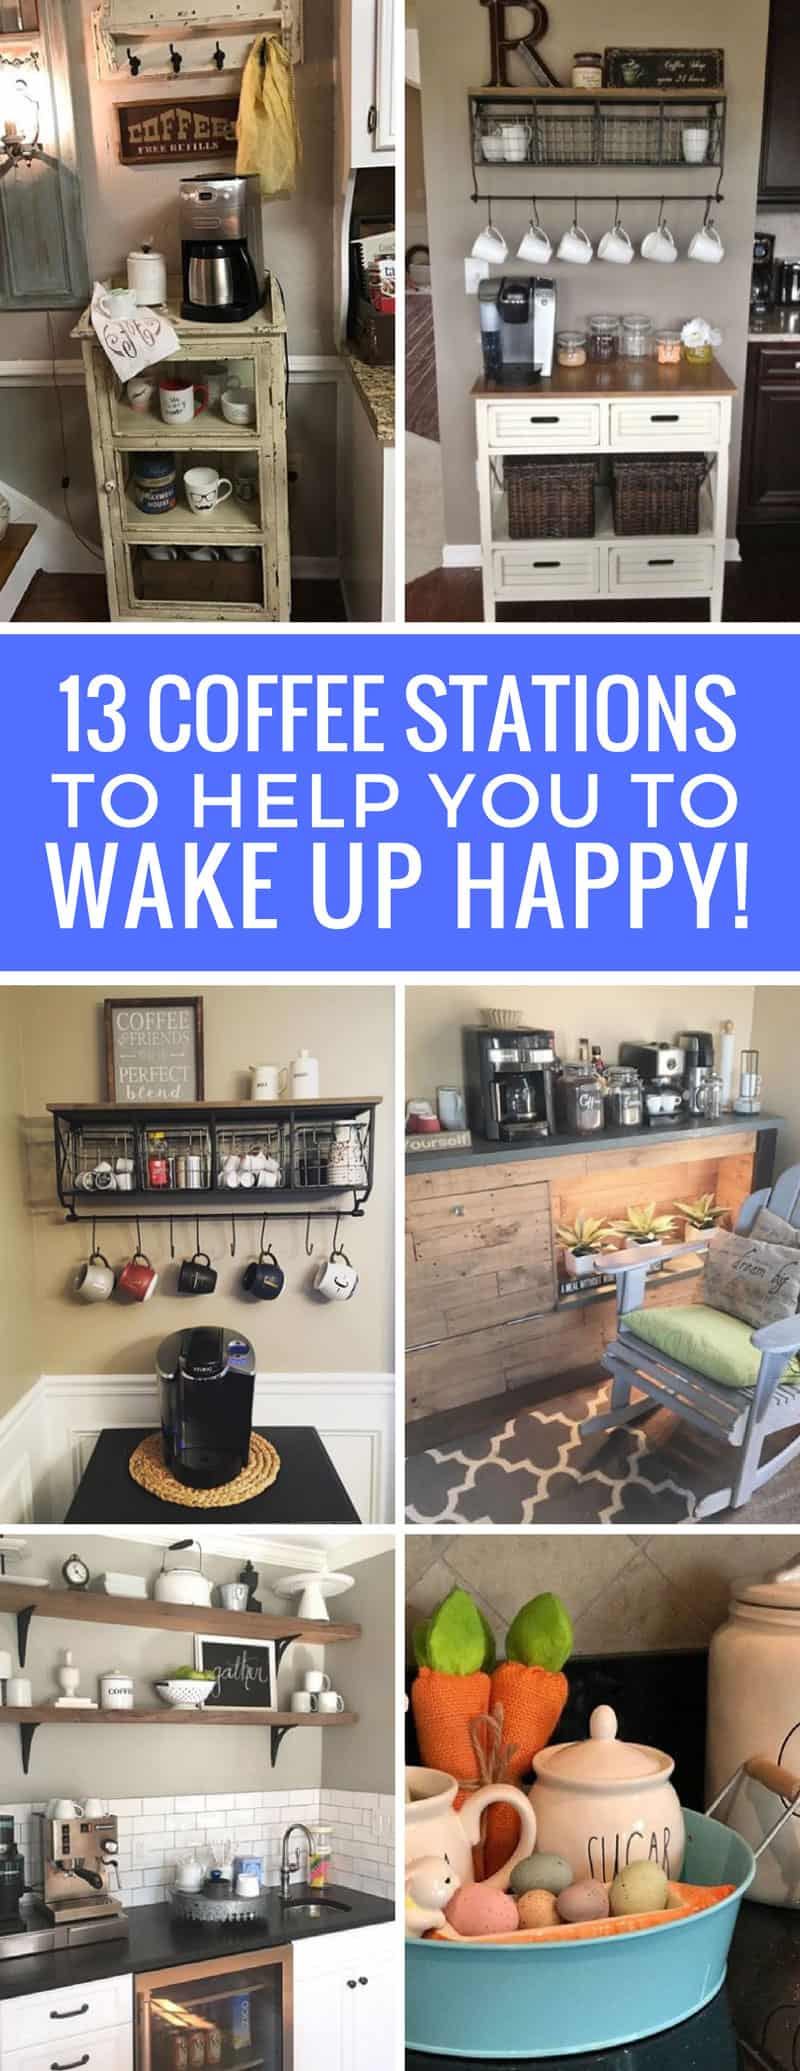 Totally in love with these home coffee station ideas! I need one of these in my life!